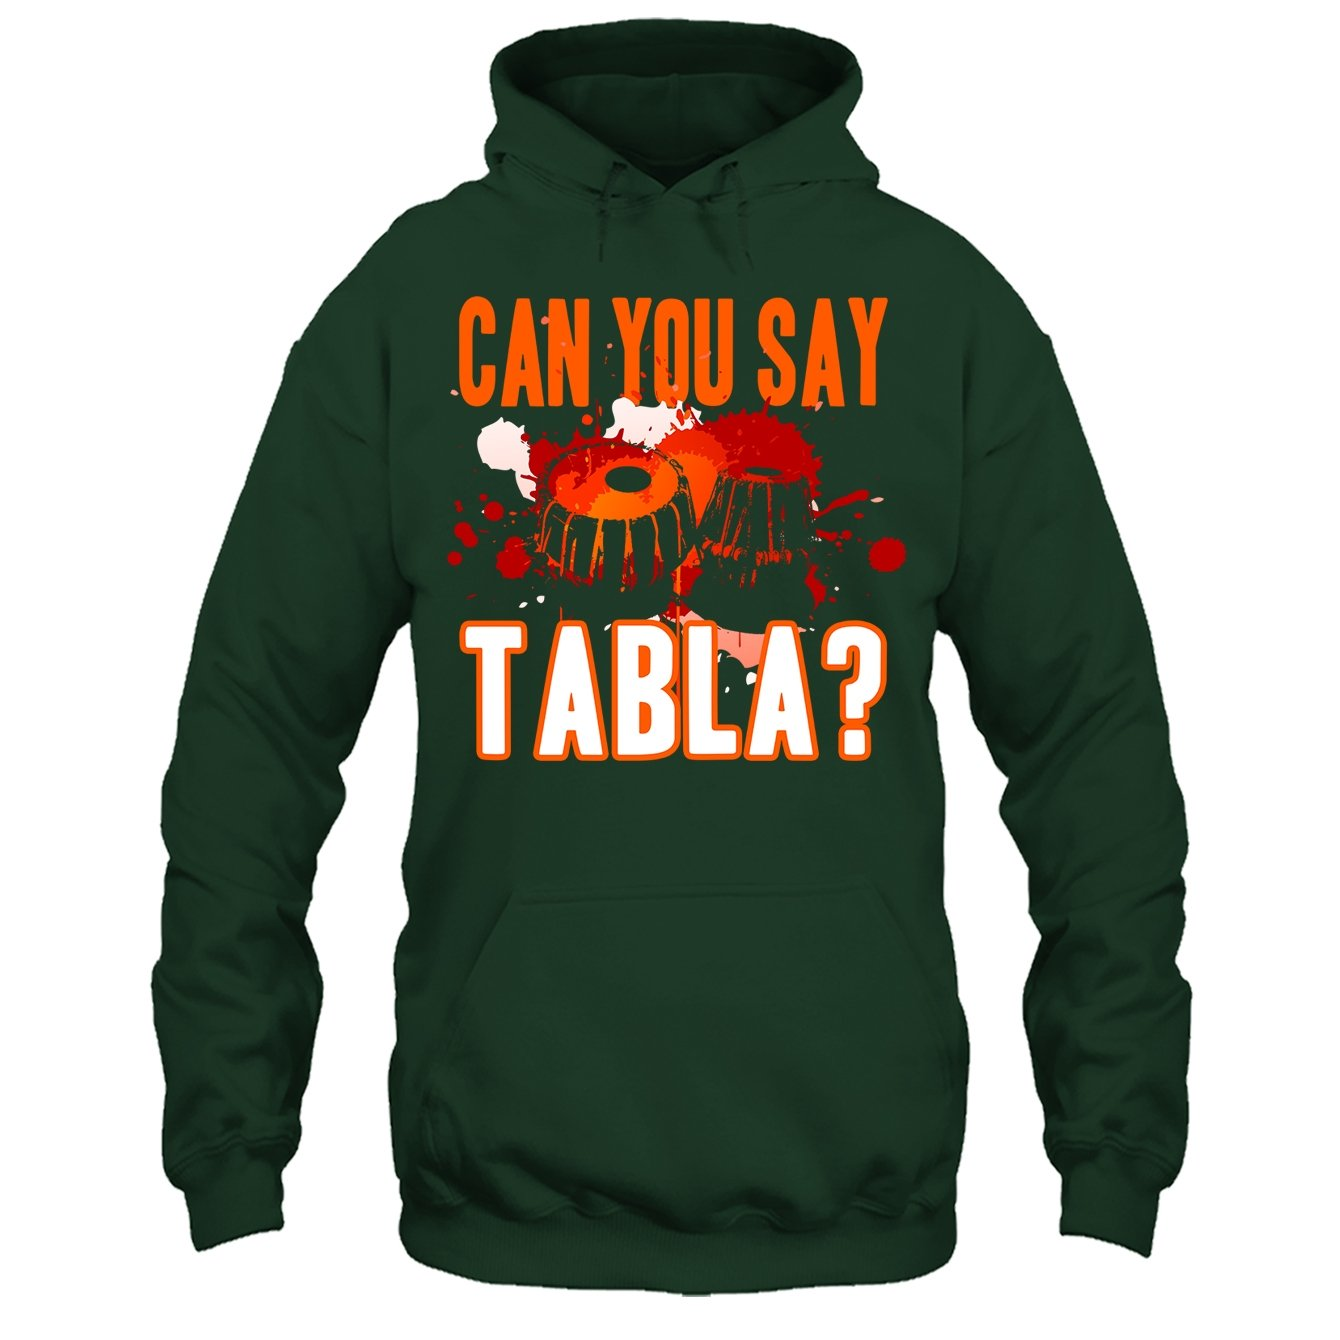 Addblue Tabla Cool Tee Shirt Can You Say Tabla Tshirt